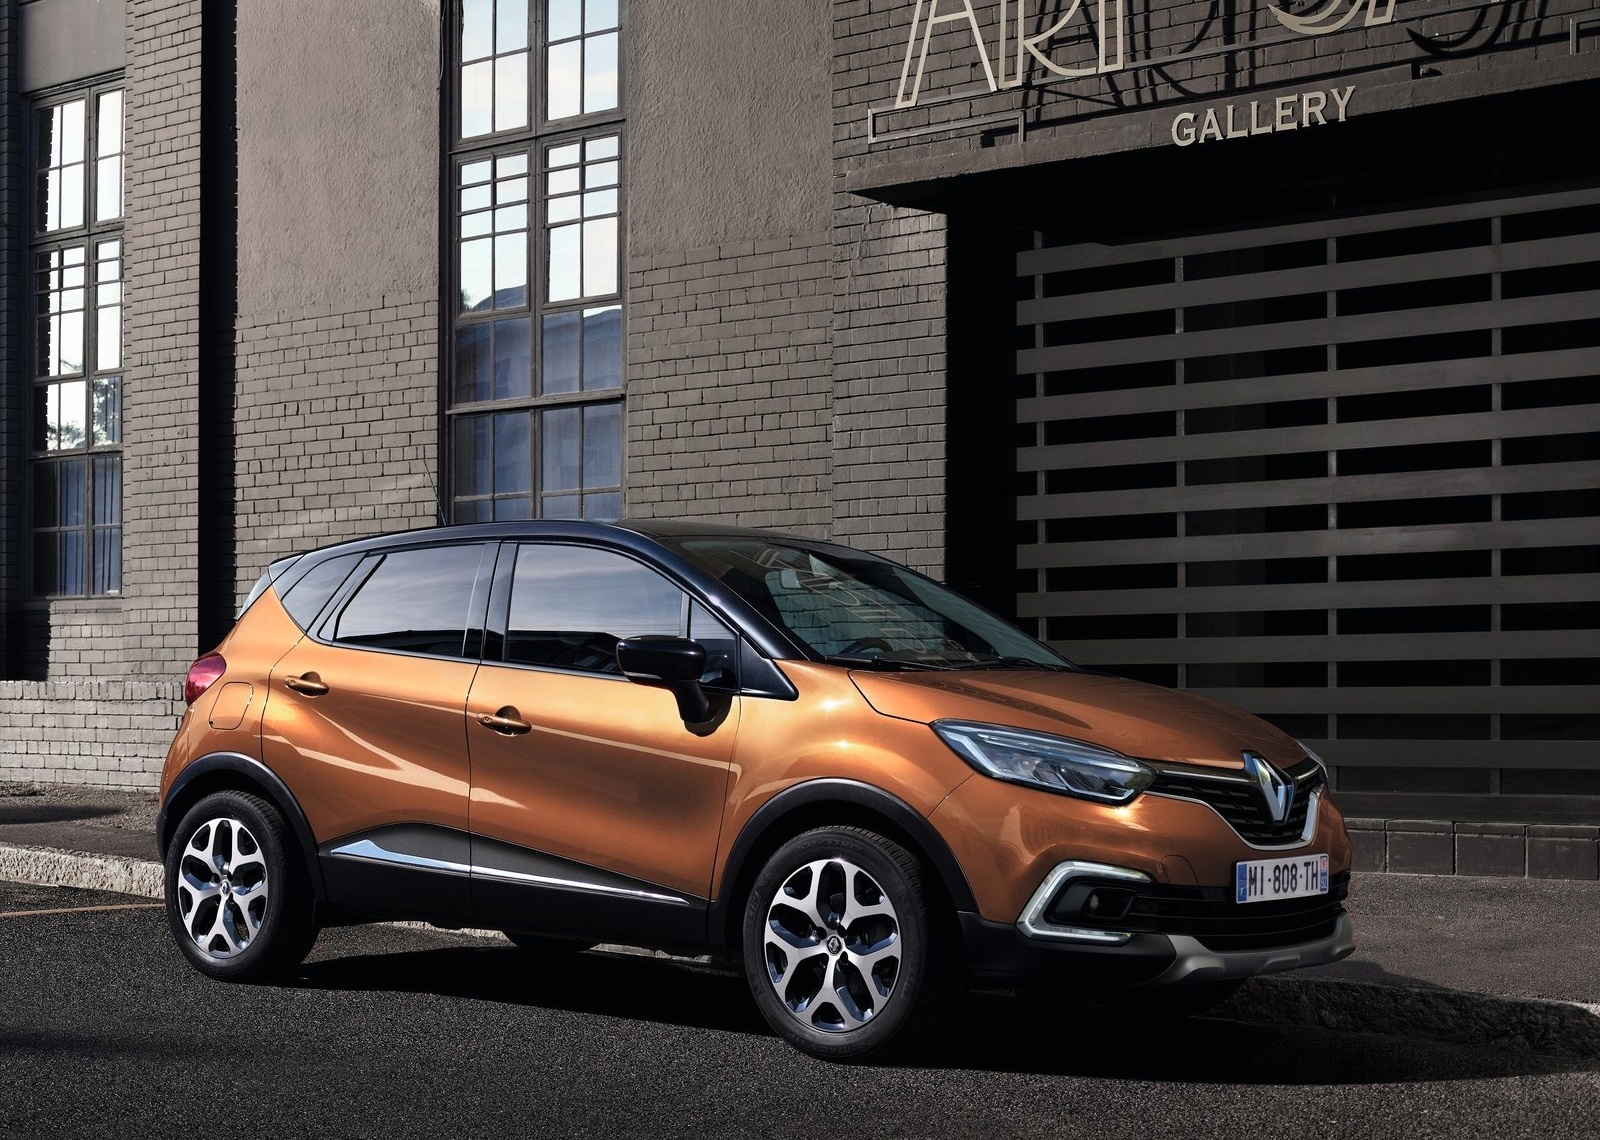 renault captur precios detalles y equipamiento en m xico autos y moda m xico. Black Bedroom Furniture Sets. Home Design Ideas